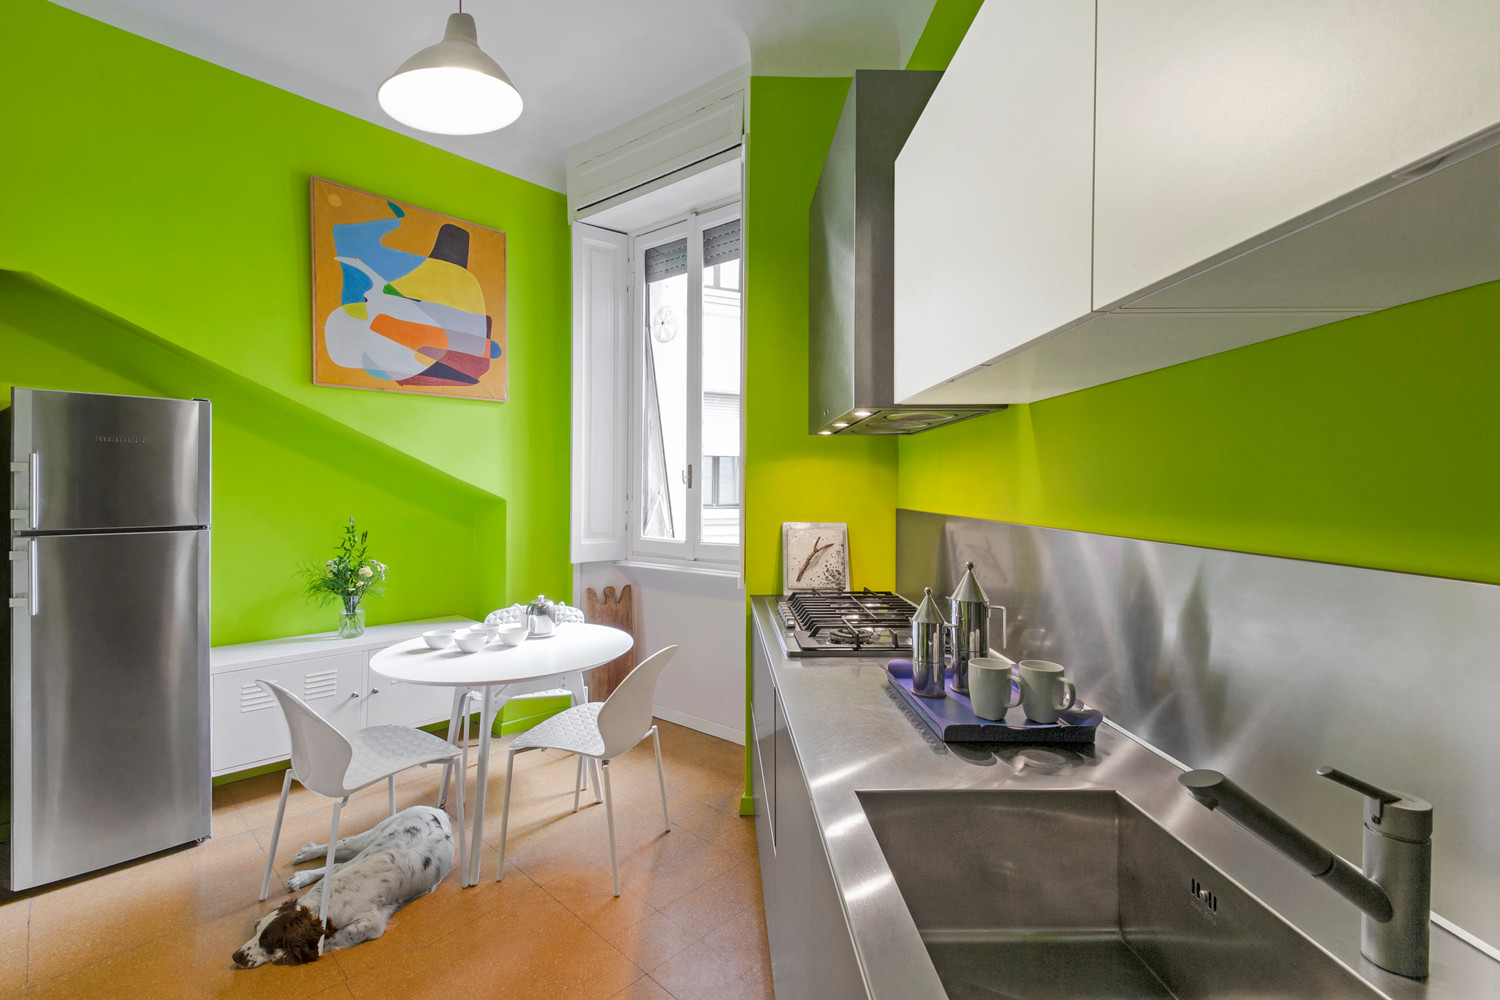 Dan Küche Arbeitsplatte Basin 75 Beautiful Green Kitchen With Stainless Steel Countertops Pictures & Ideas - April, 2021 | Houzz